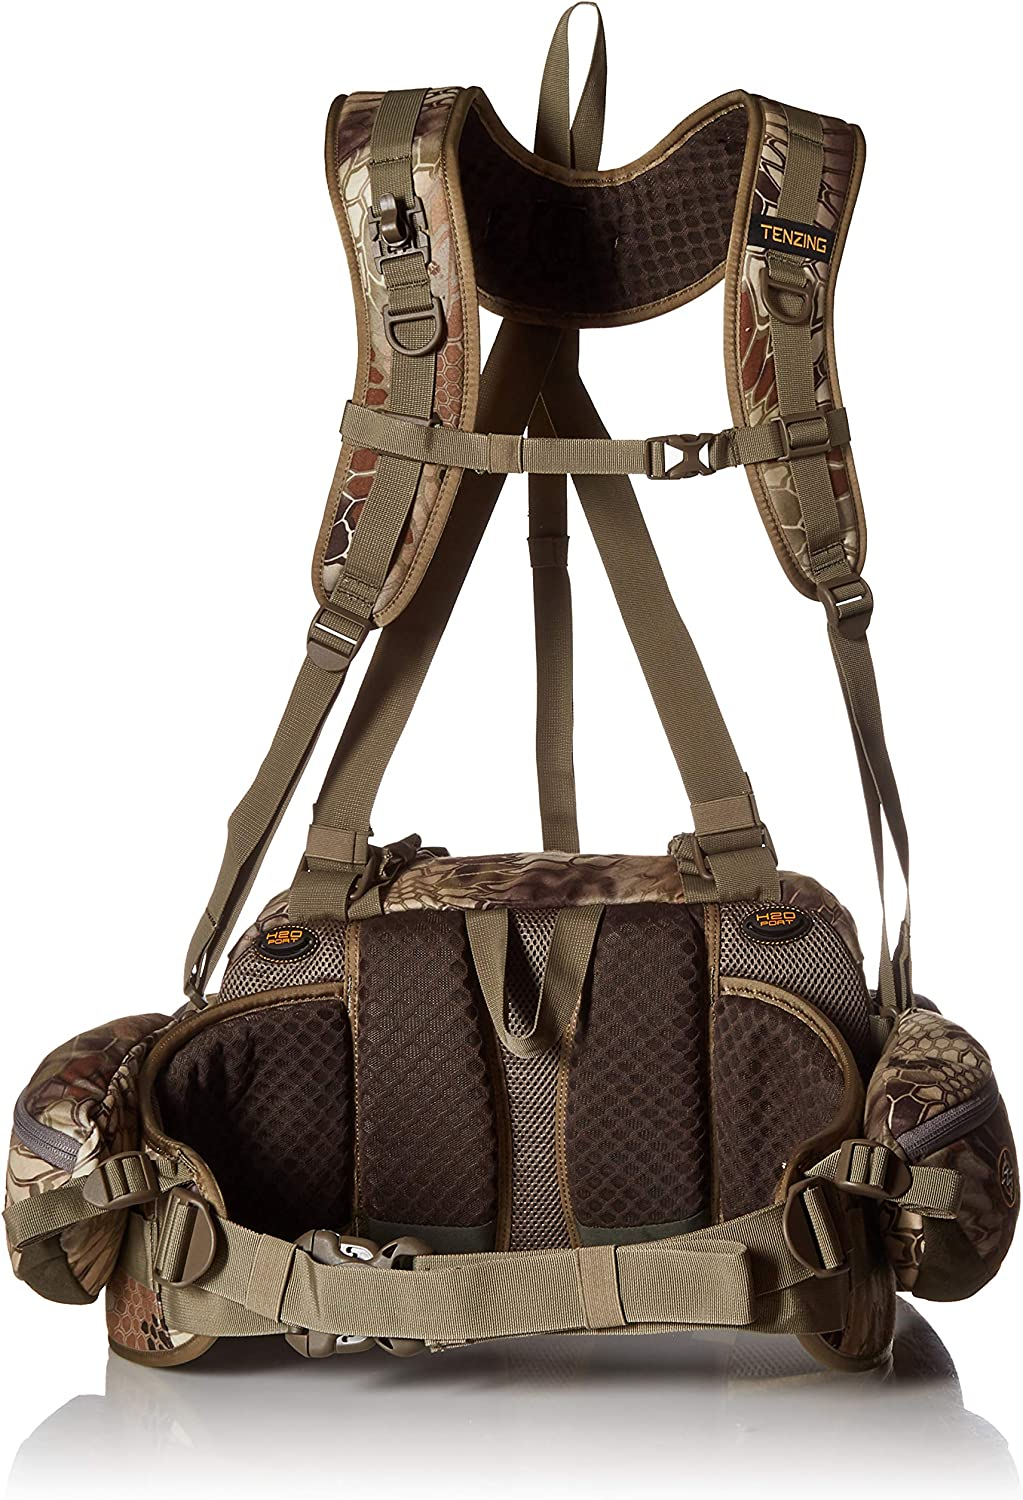 TENZING TZ 1250 Lumbar Backpack Kryptek Highlander Camo